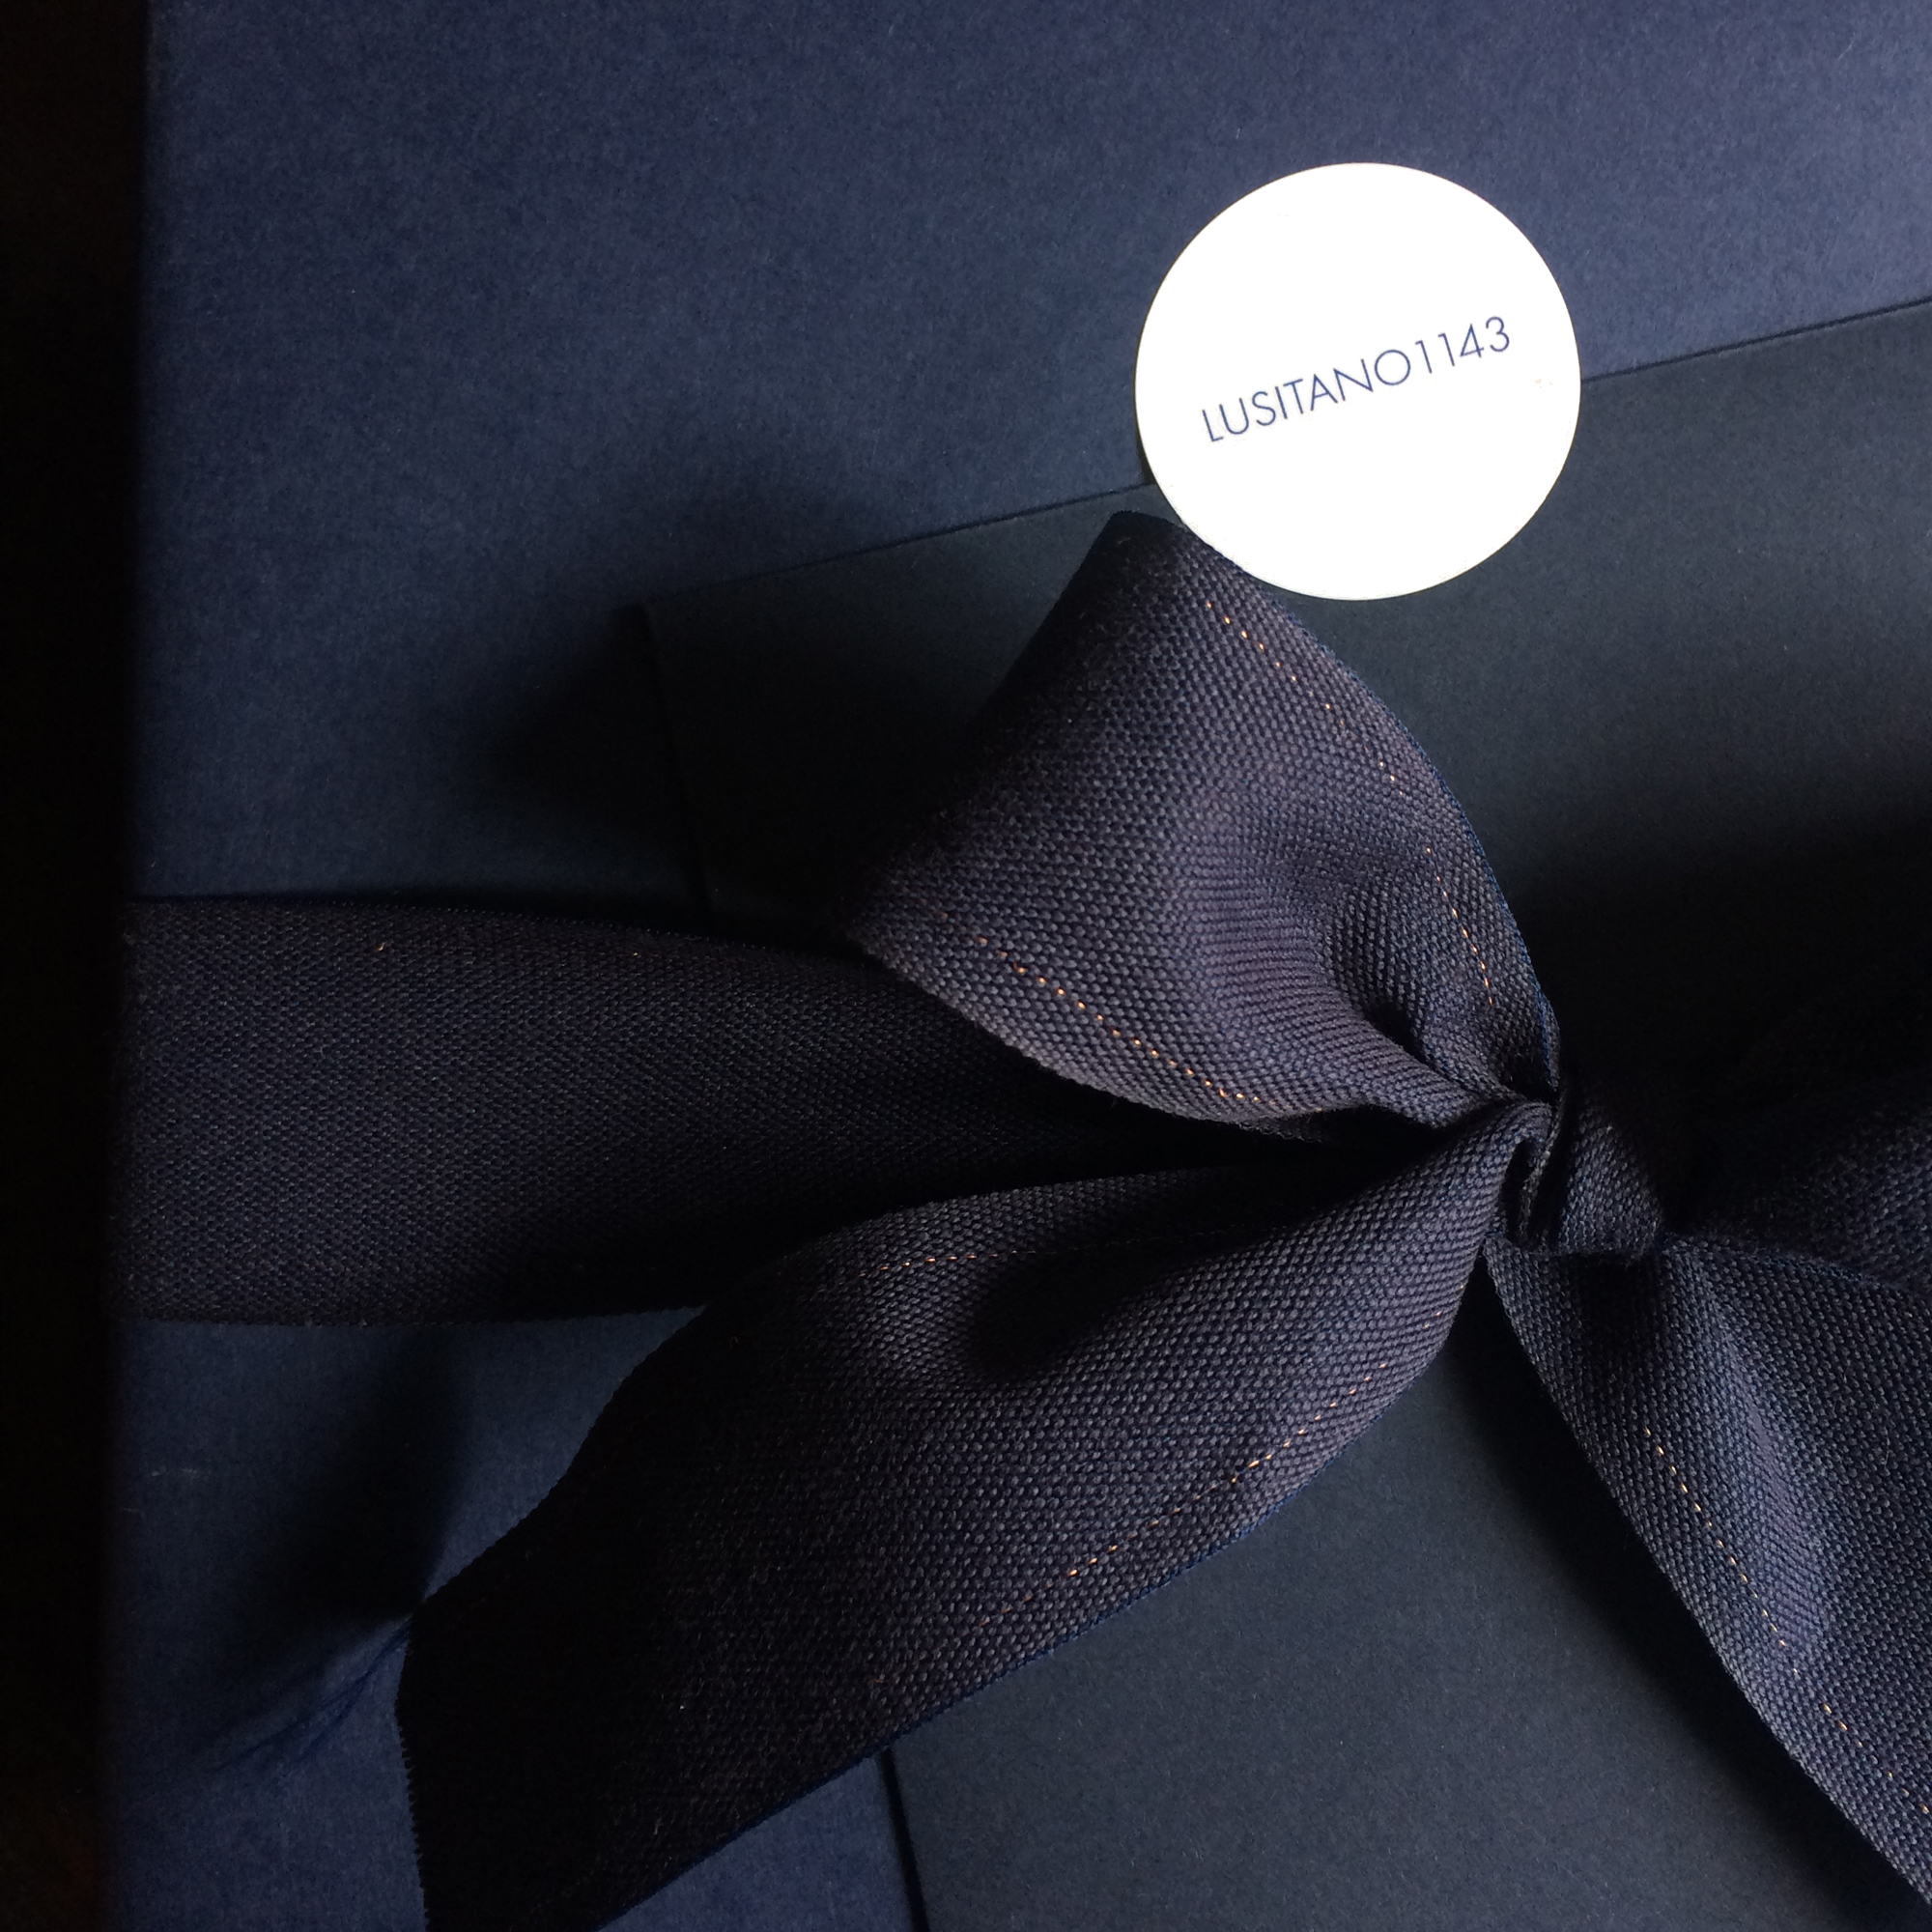 GIFT CARDS - Want to give someone the joy of the hunt? Why not send them a gift card so they can choose for themselves! Arriving via email or in a neatly wrapped gift-box in the mail, a LUSITANO1143 gift card could be the prefect gift. Wrapping and mailing all free of charge.SHOP NOW >